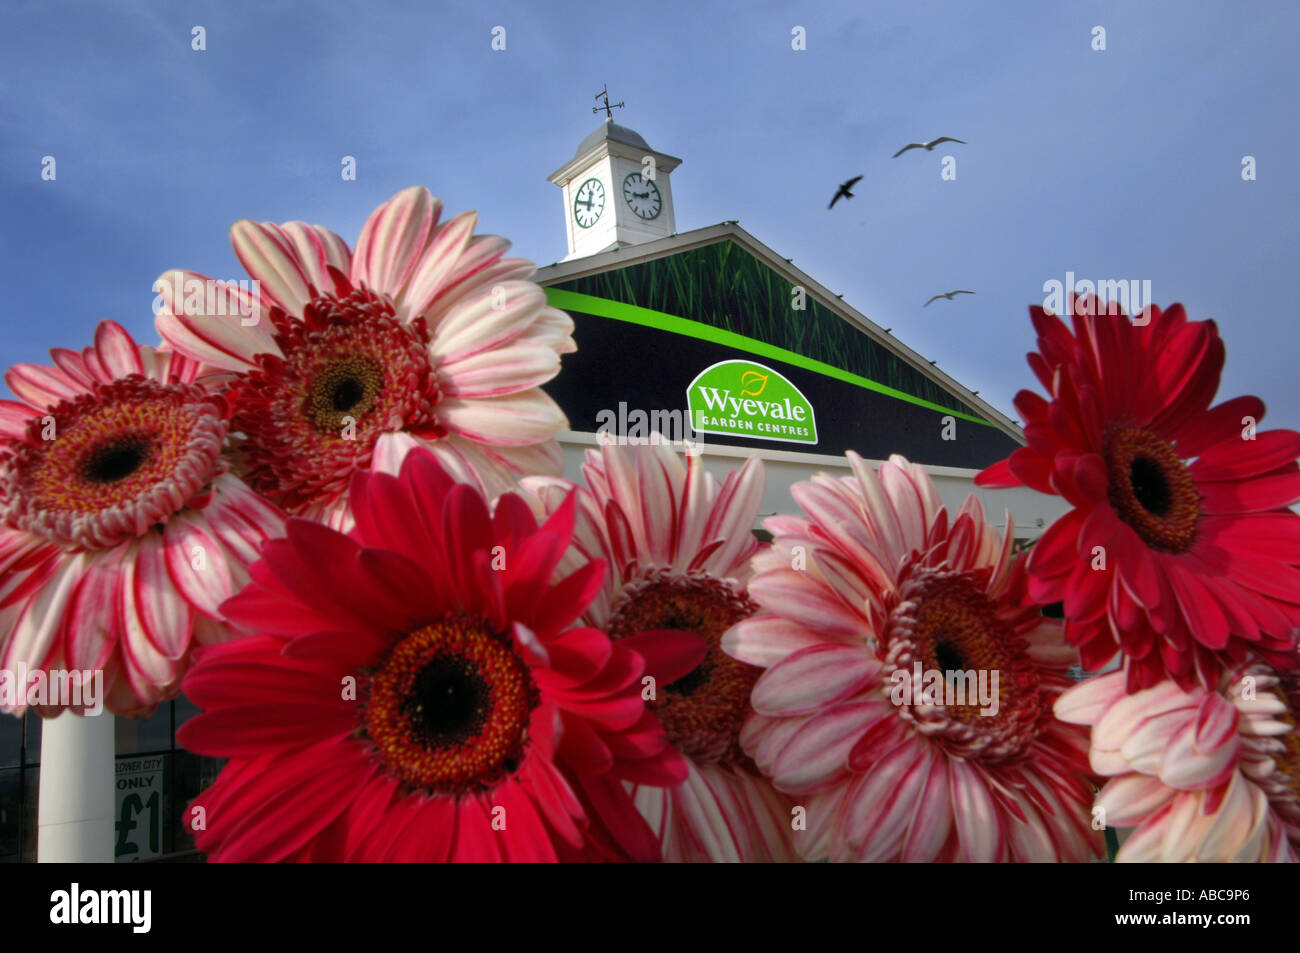 Ravishing A Crow And Two Seagulls Fly Over Wyevale Garden Centre At Brighton  With Foxy A Crow And Two Seagulls Fly Over Wyevale Garden Centre At Brighton Seen  Through A Bunch Of Gerbera With Cool Bog Garden Plants Uk Also Crescent Garden House Whitby In Addition Spring Gardens Medical Centre And Parking Hatton Garden As Well As Small Garden Pools Additionally Harrods Garden Centre From Alamycom With   Foxy A Crow And Two Seagulls Fly Over Wyevale Garden Centre At Brighton  With Cool A Crow And Two Seagulls Fly Over Wyevale Garden Centre At Brighton Seen  Through A Bunch Of Gerbera And Ravishing Bog Garden Plants Uk Also Crescent Garden House Whitby In Addition Spring Gardens Medical Centre From Alamycom